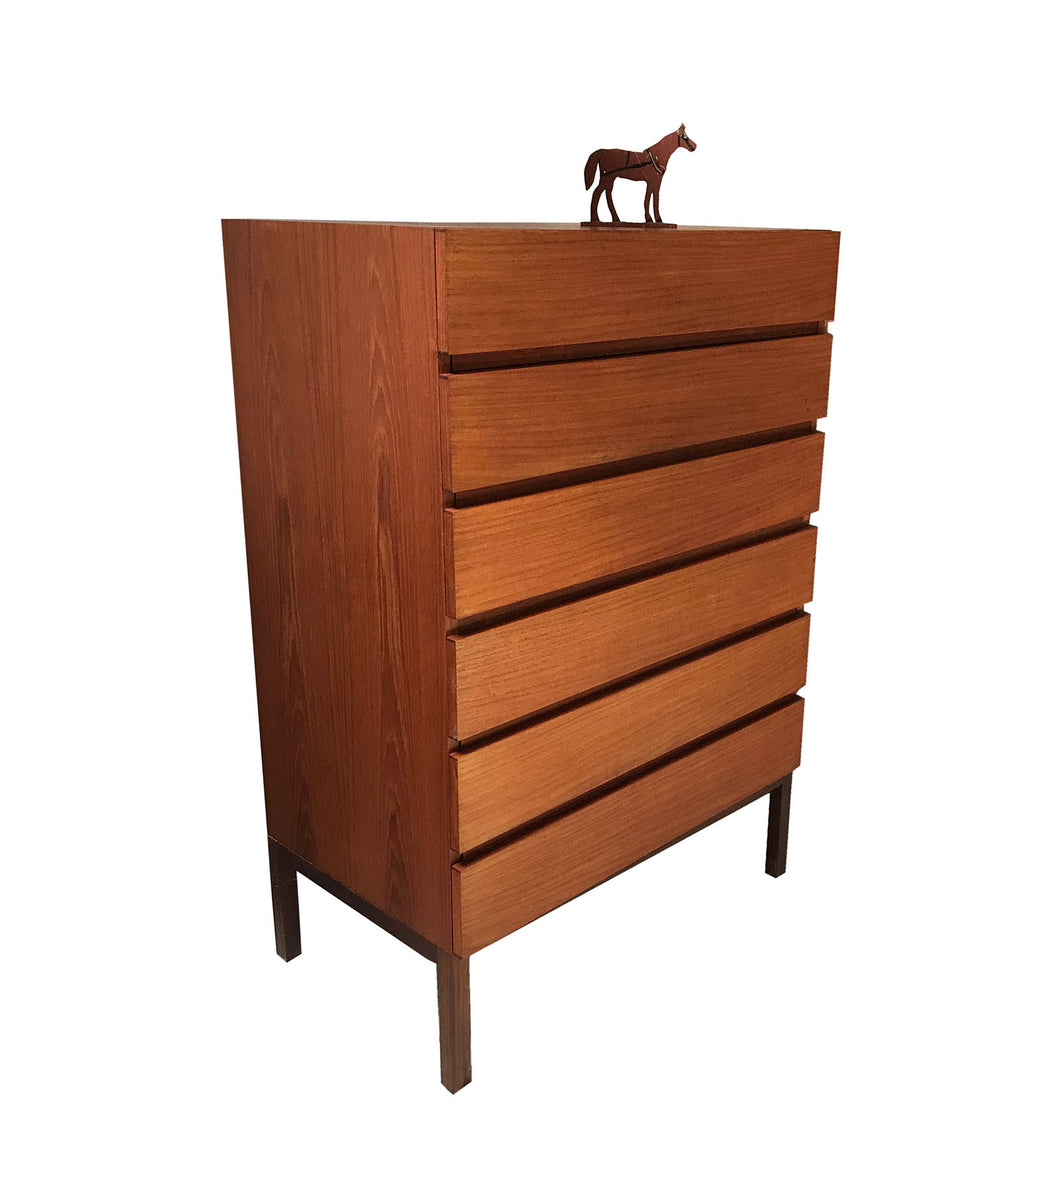 REFF Teak Highboy Dresser